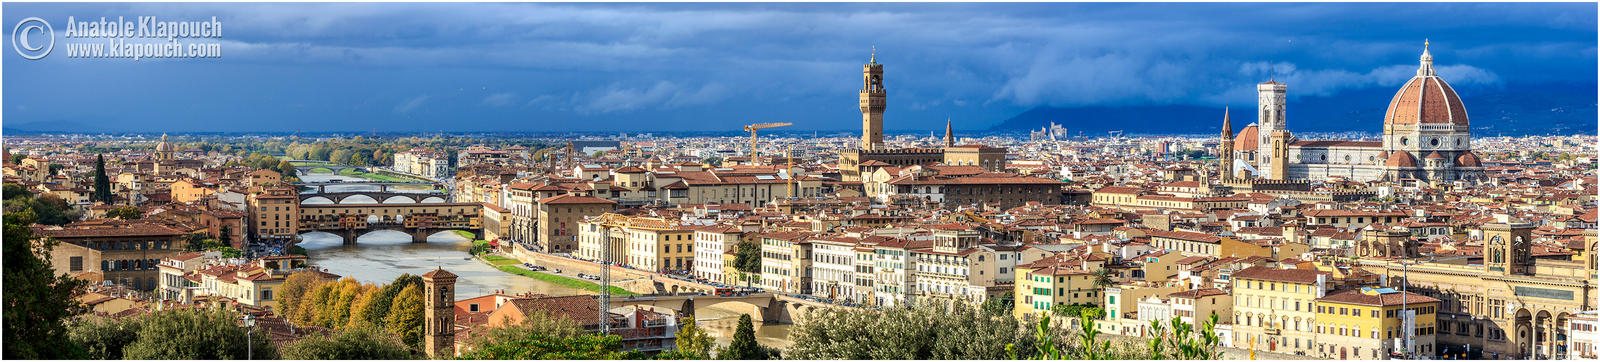 Firenze Panorama by klapouch